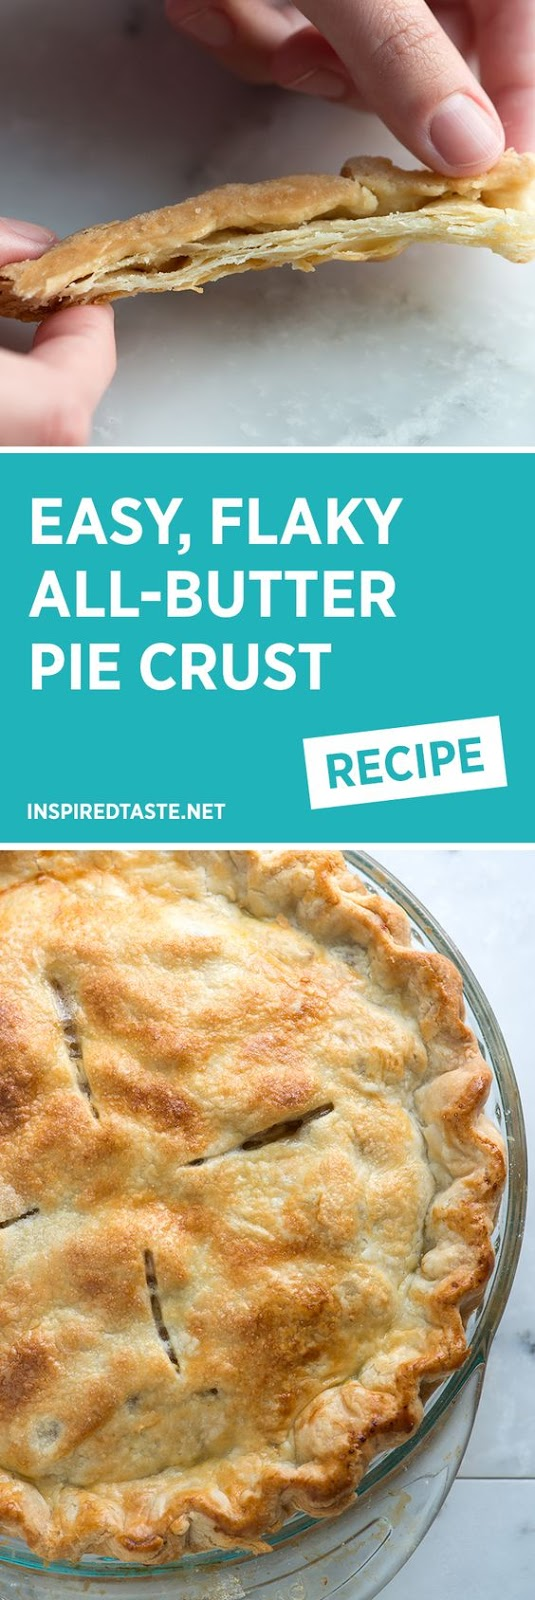 Easy All-Butter Flaky Pie Crust Recipe